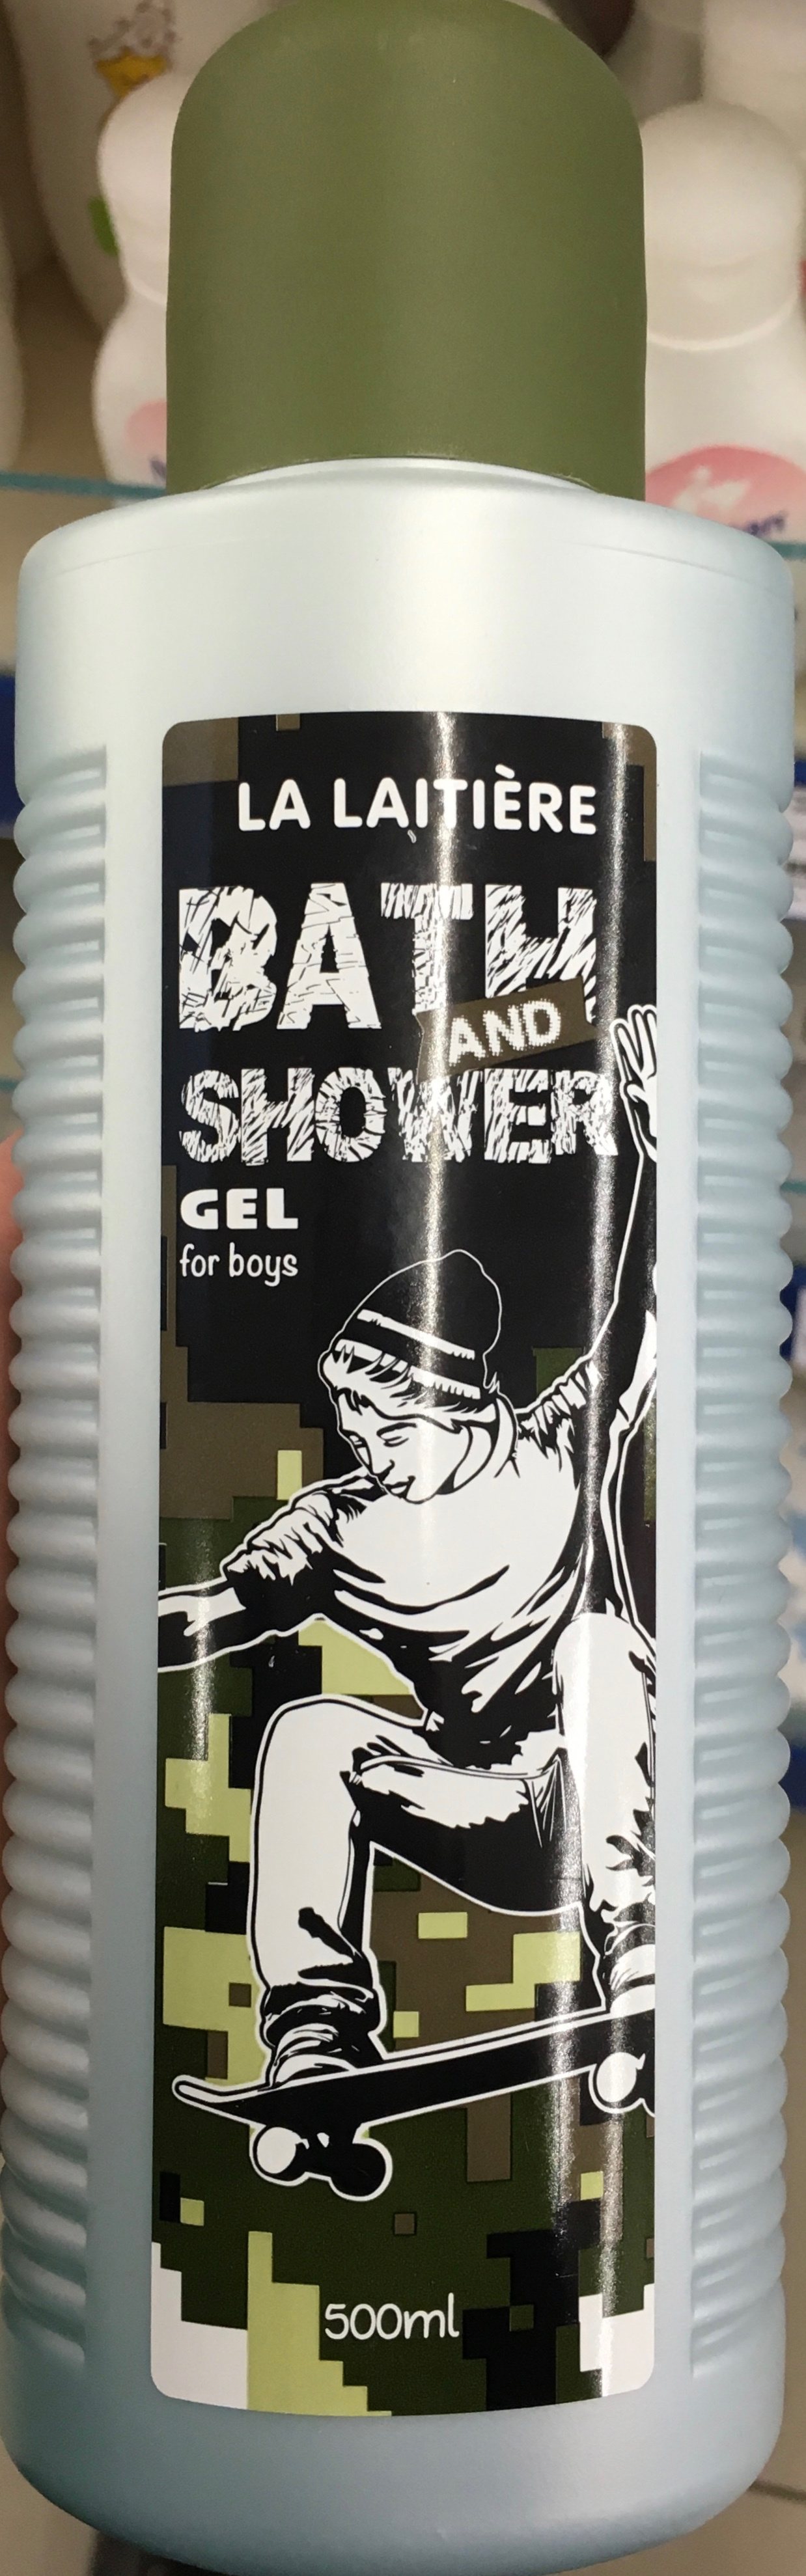 Bath and Shower Gel for boys - Product - fr